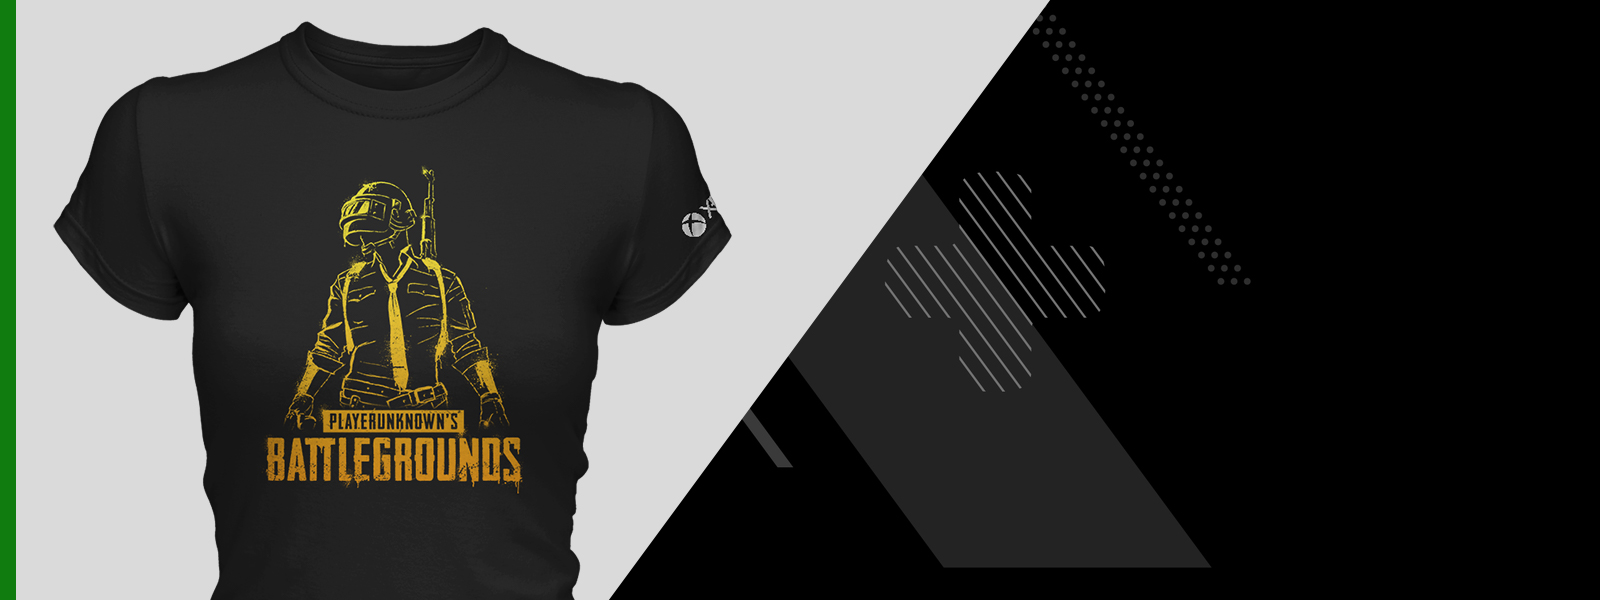 Xbox merchandise - PlayerUnknown Battlegrounds logo